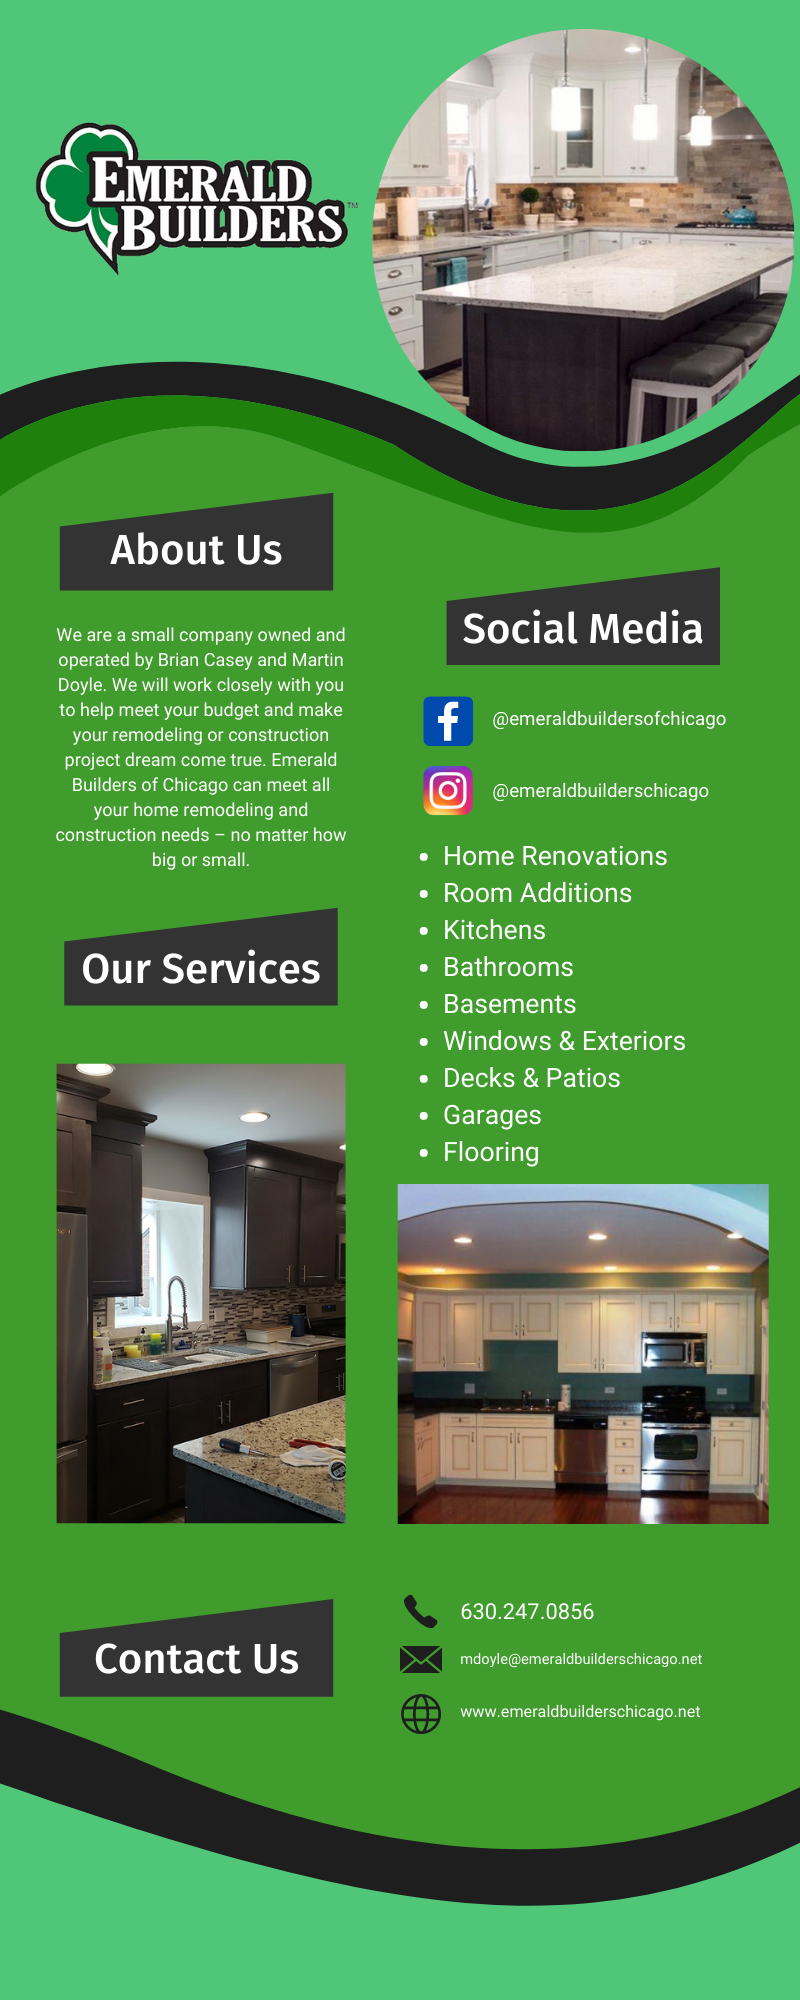 The best in construction & remodeling